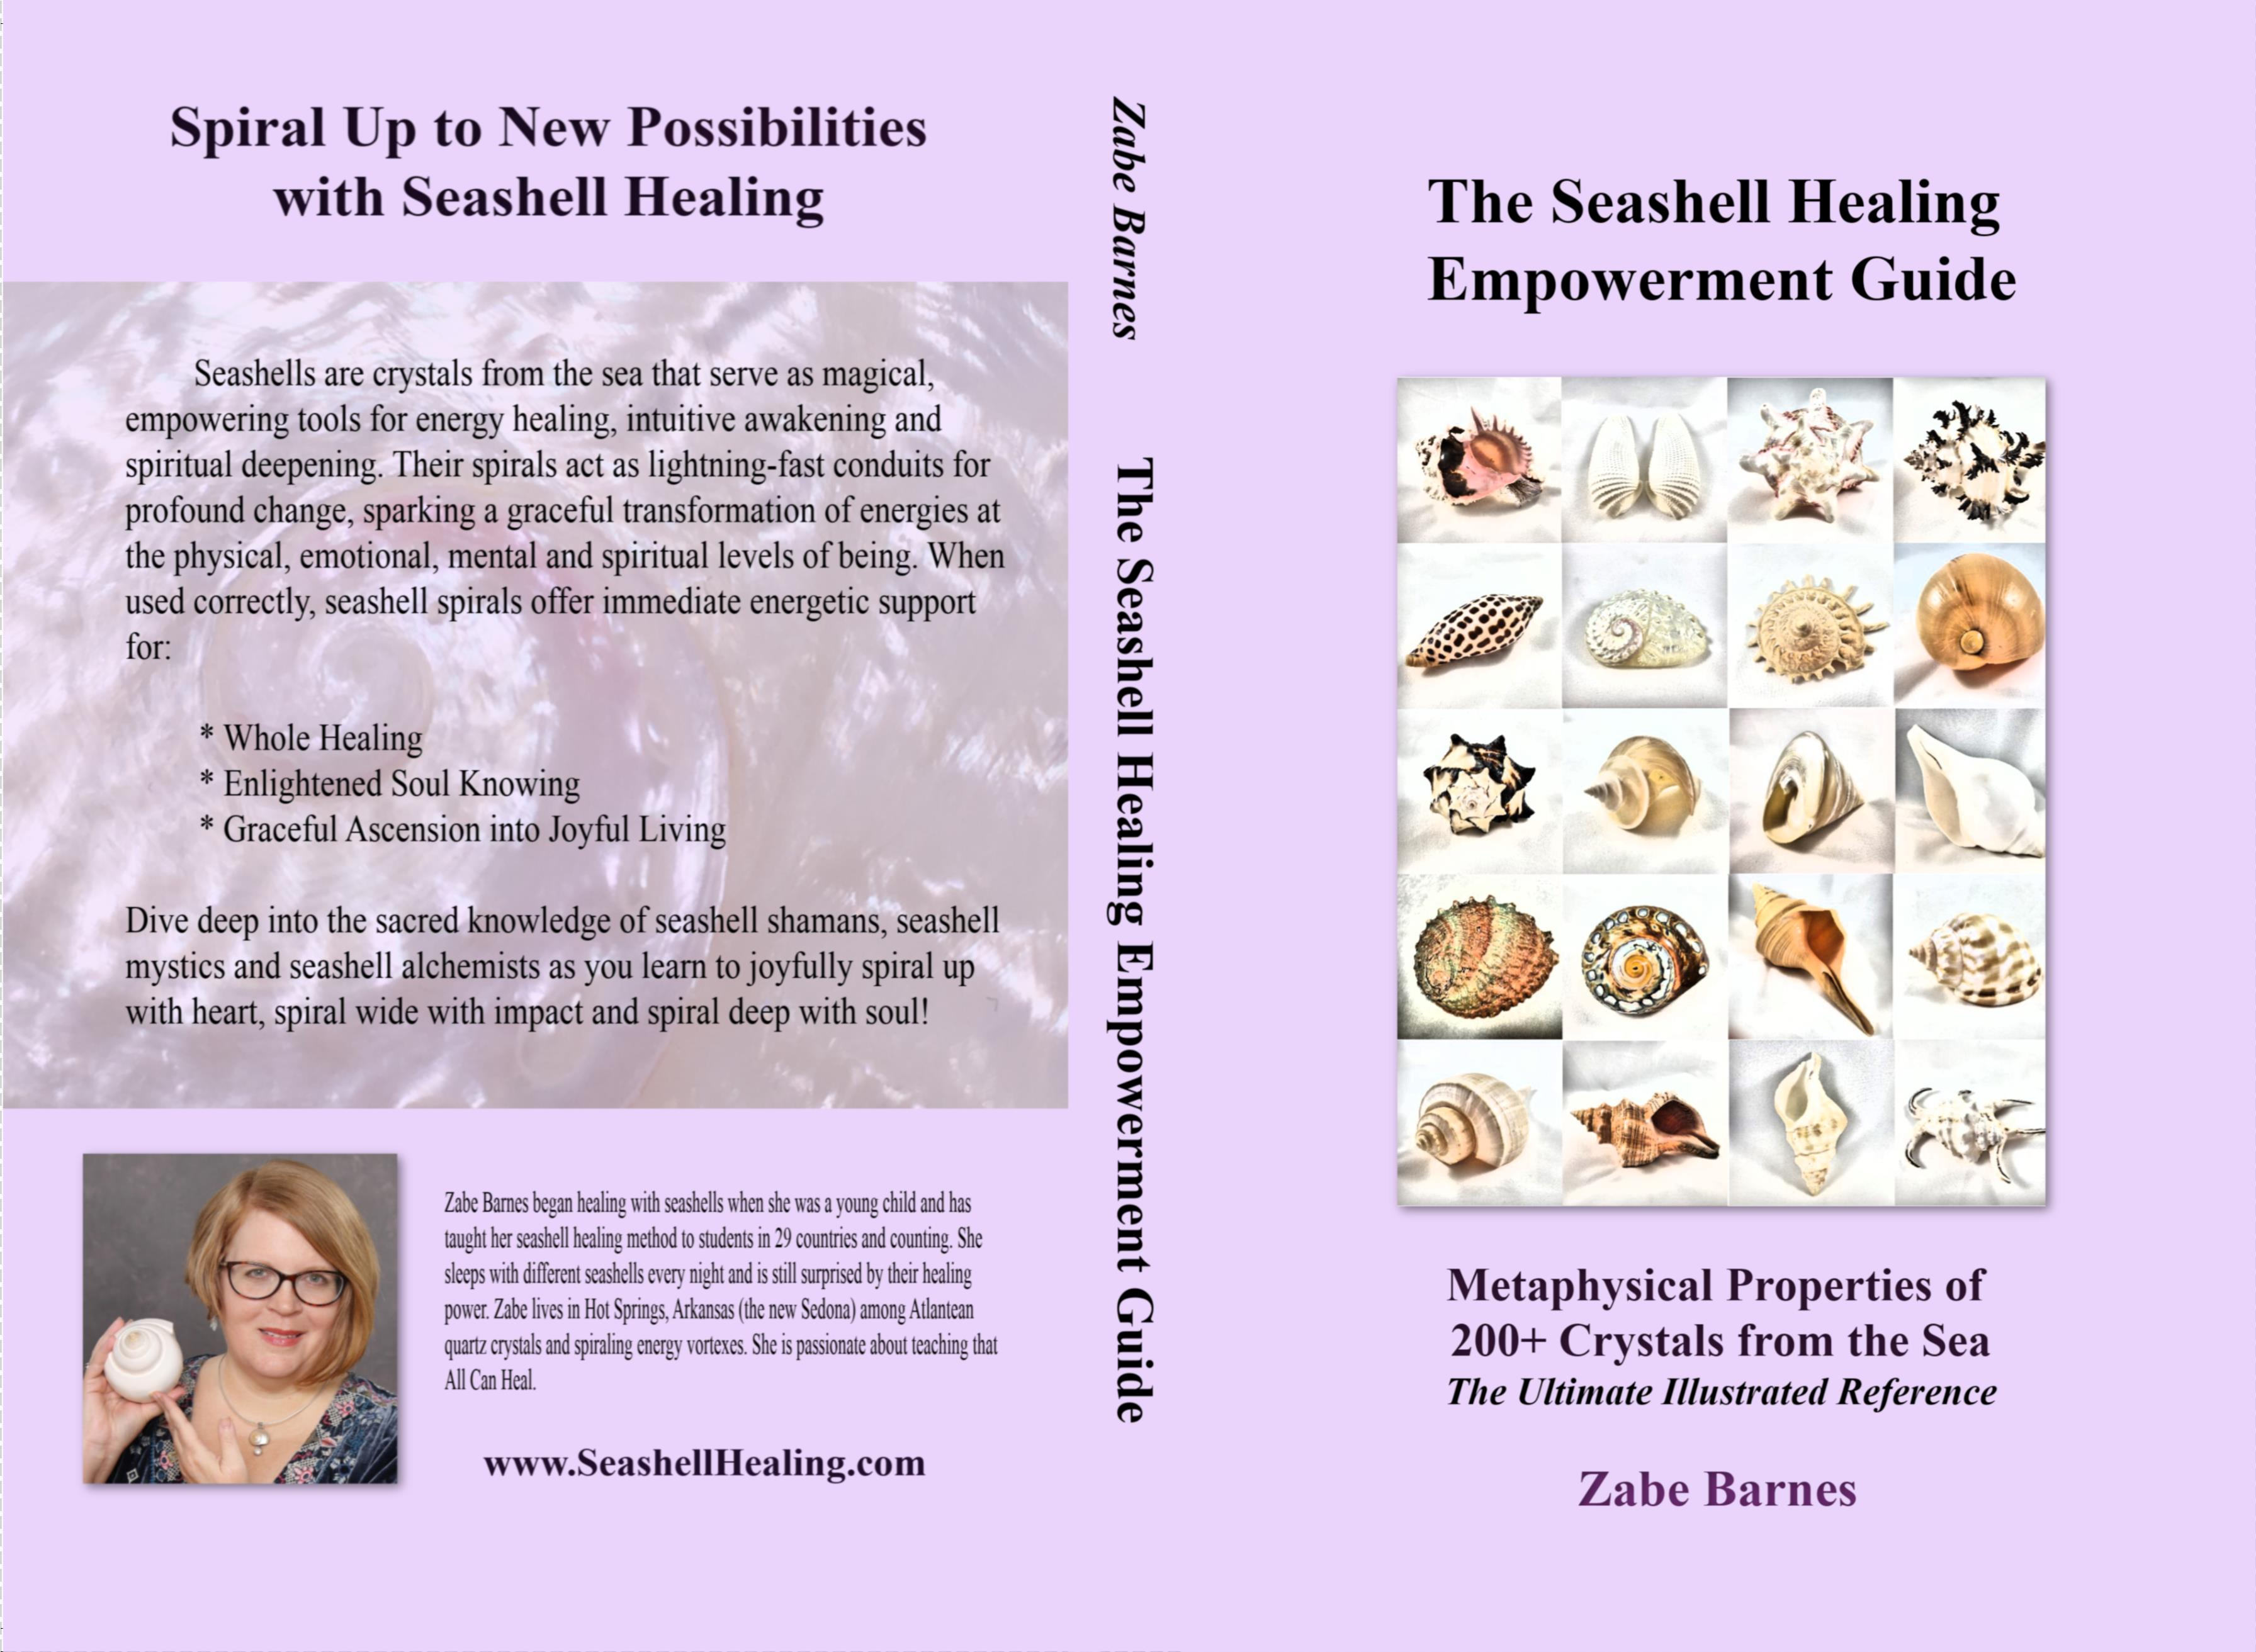 The Seashell Healing Empowerment Guide: The Metaphysical Properties of Crystals from the Sea cover image